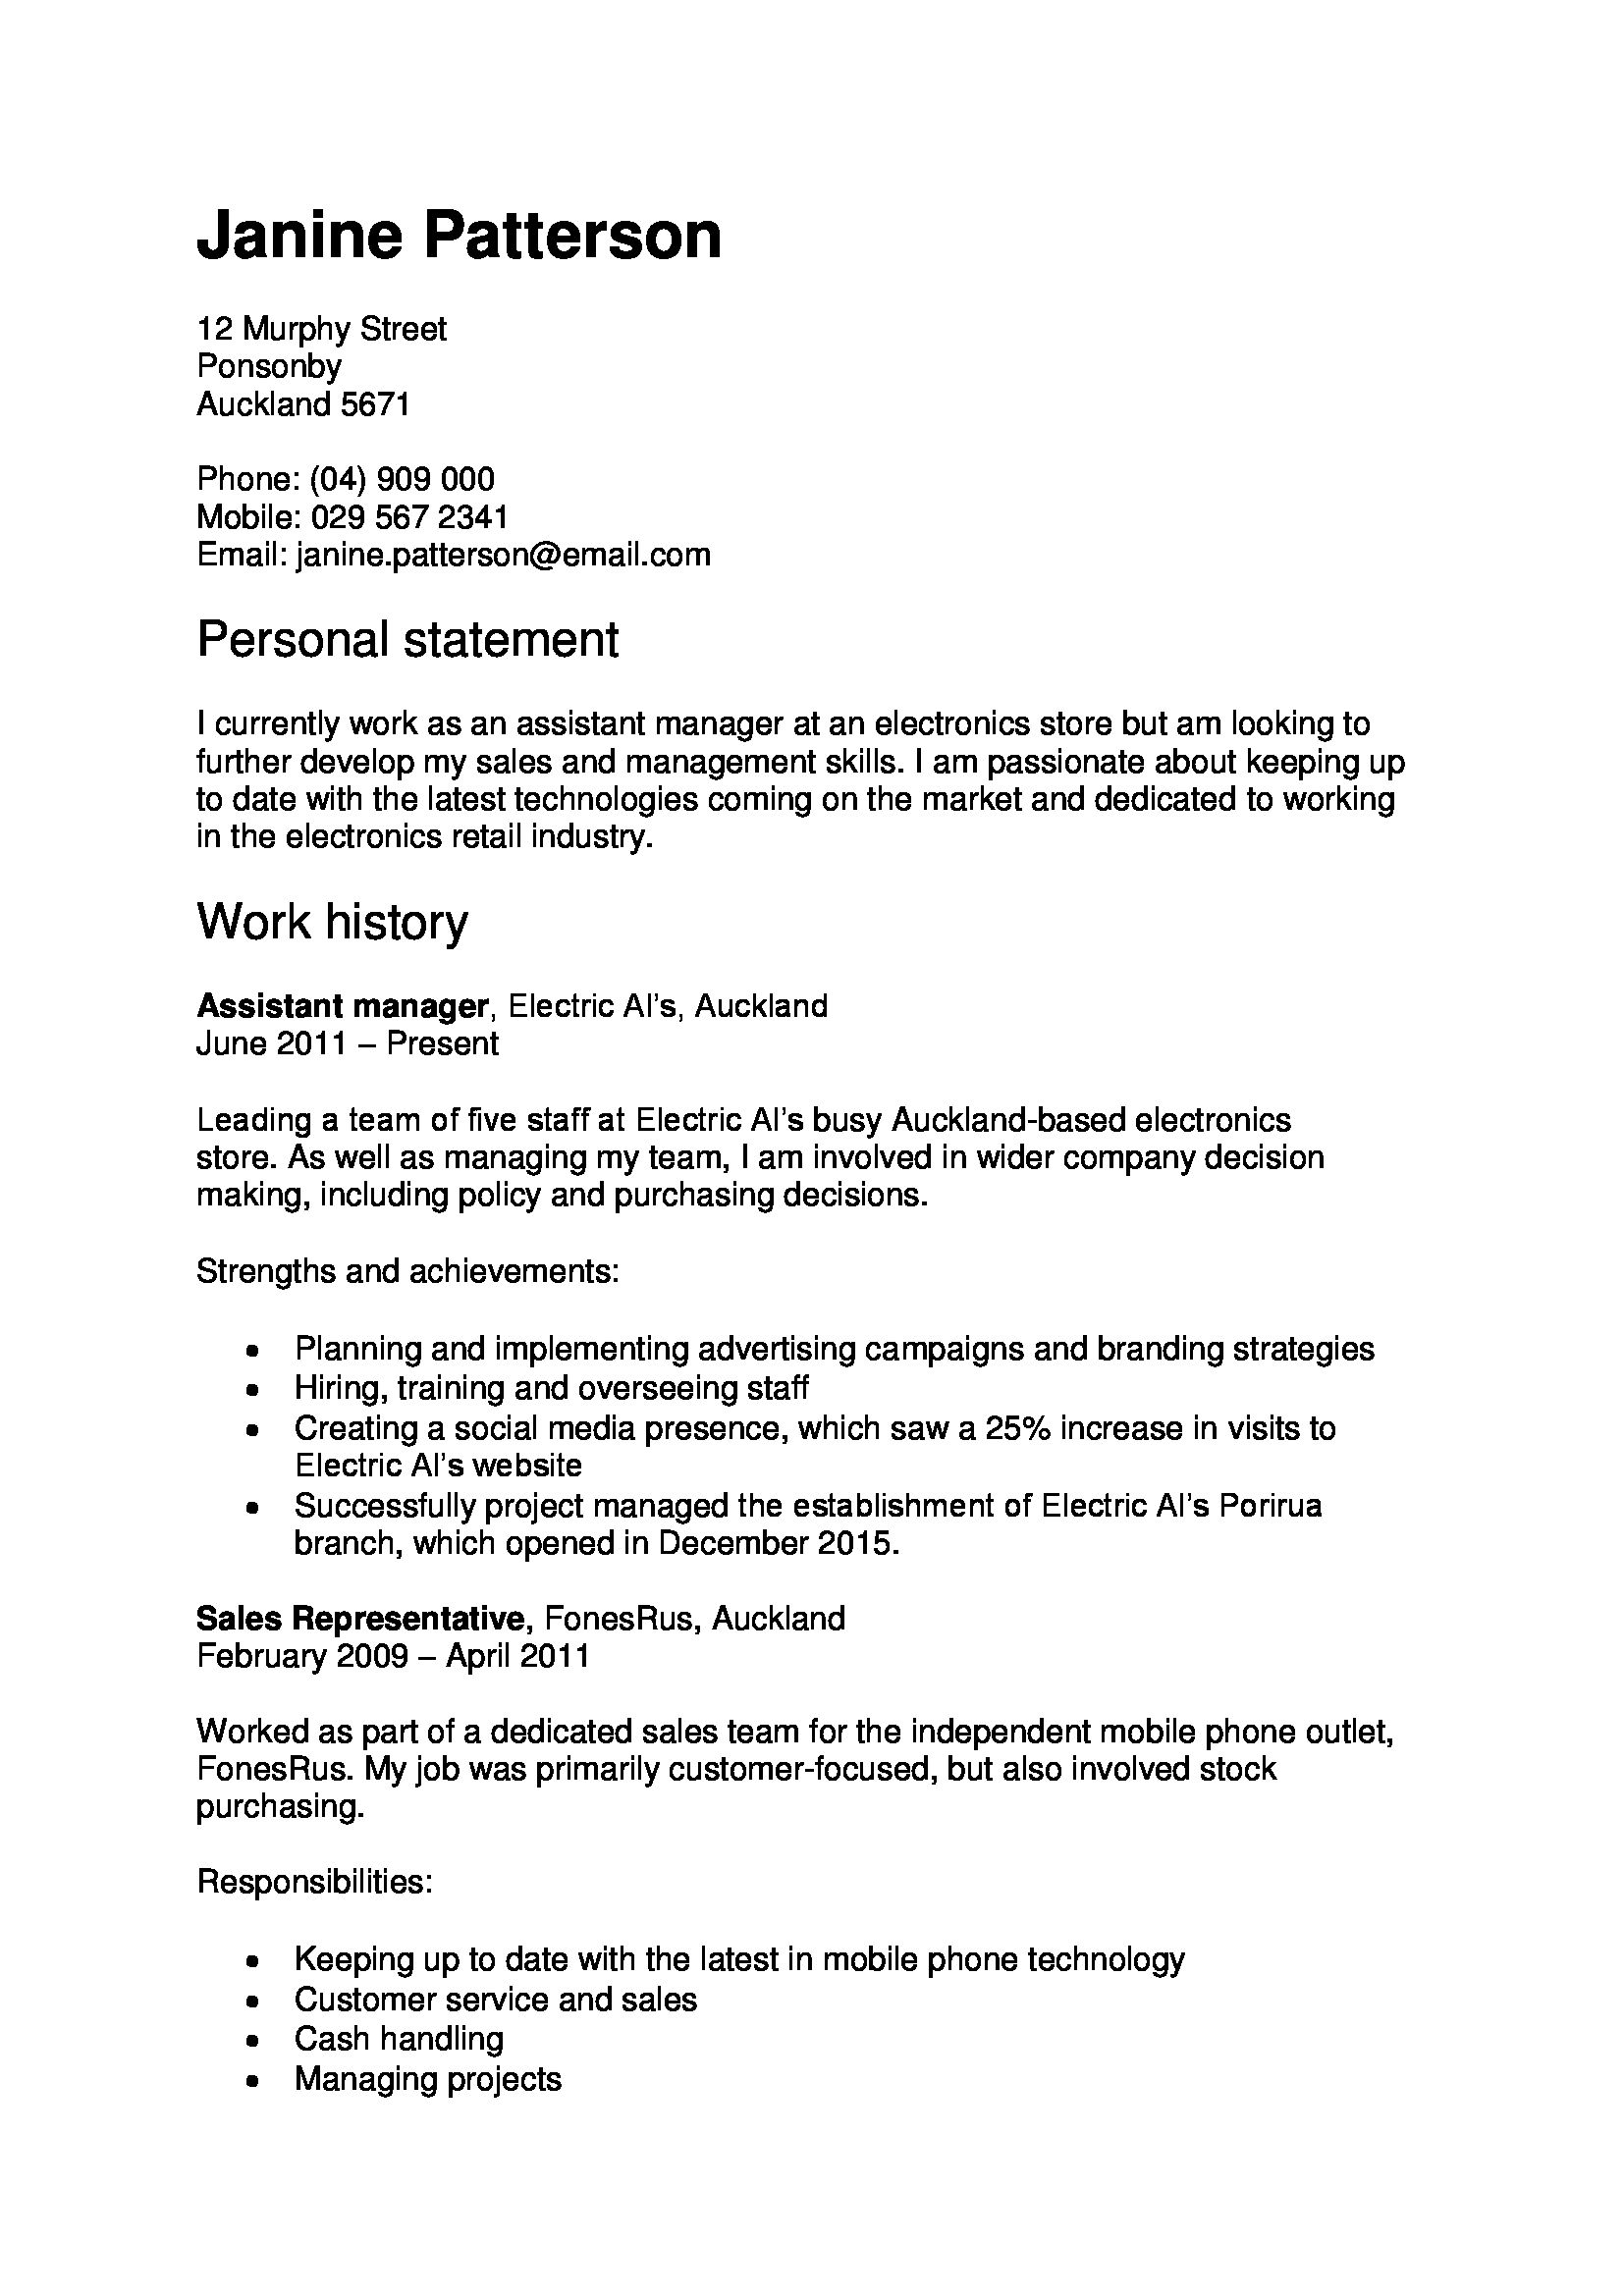 cover letter intro teaching resume examples profile skills introduction for paratransit Resume Introduction Examples For Resume